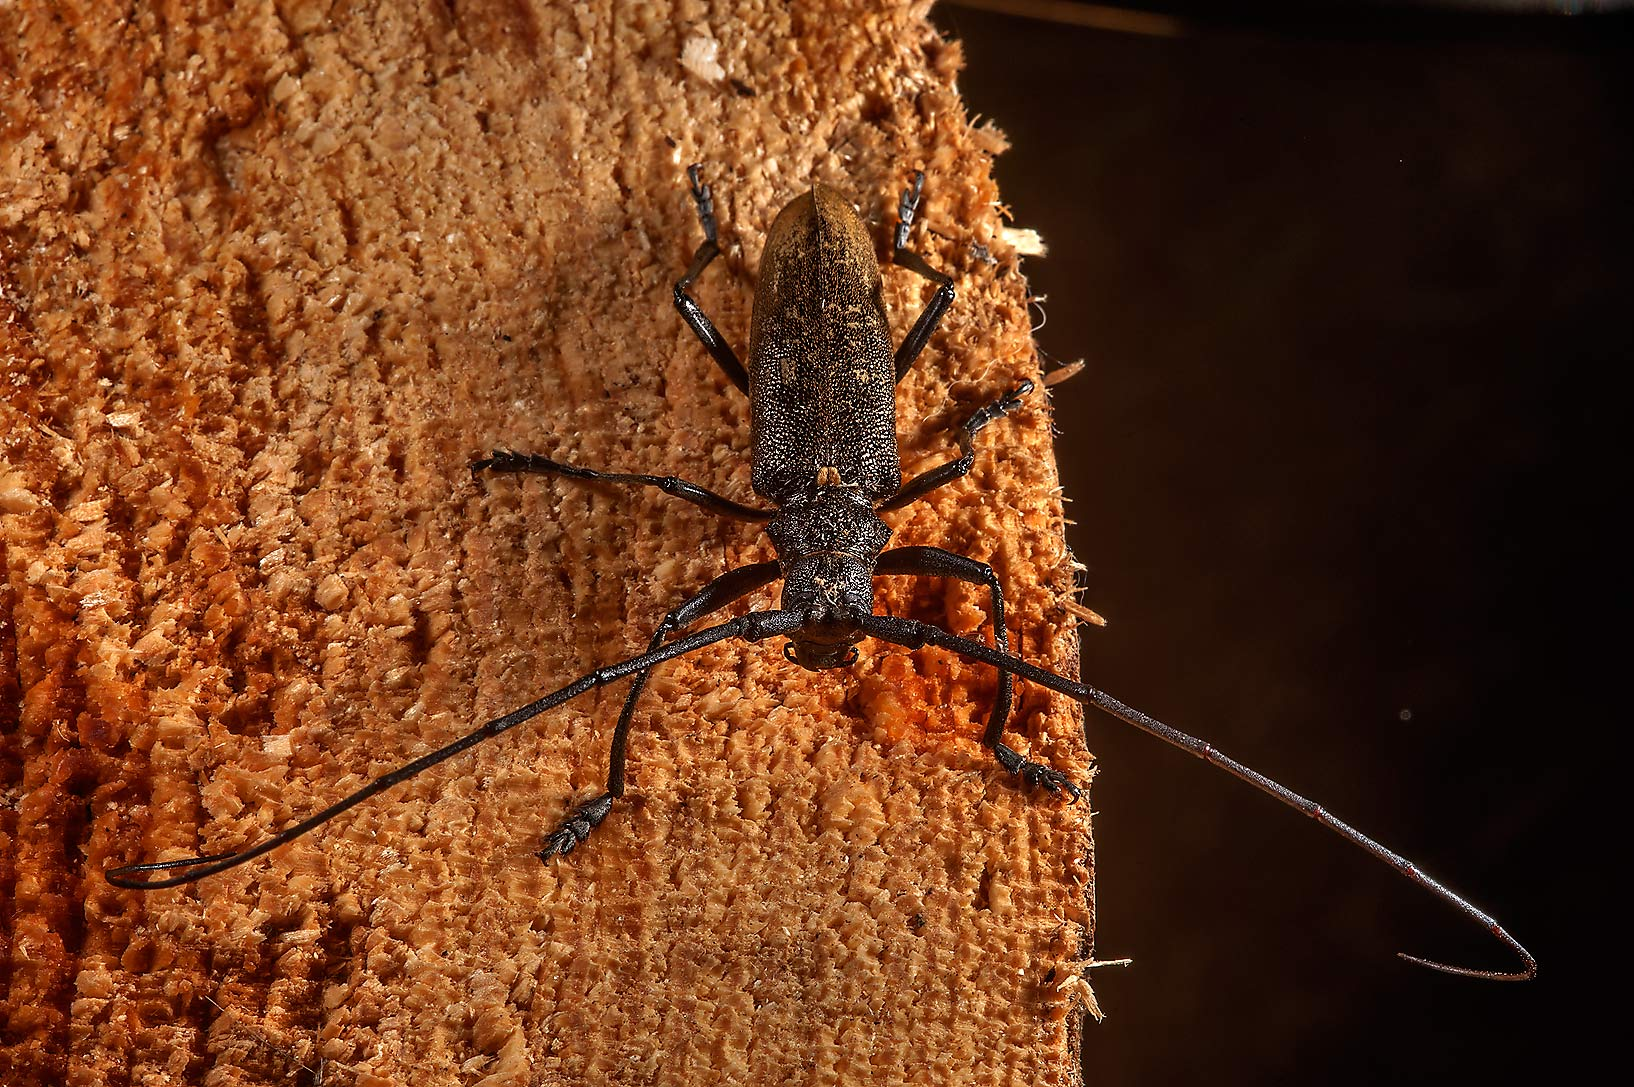 Long-horned borer beetle on a log in Posiolok...south from St.Petersburg, Russia